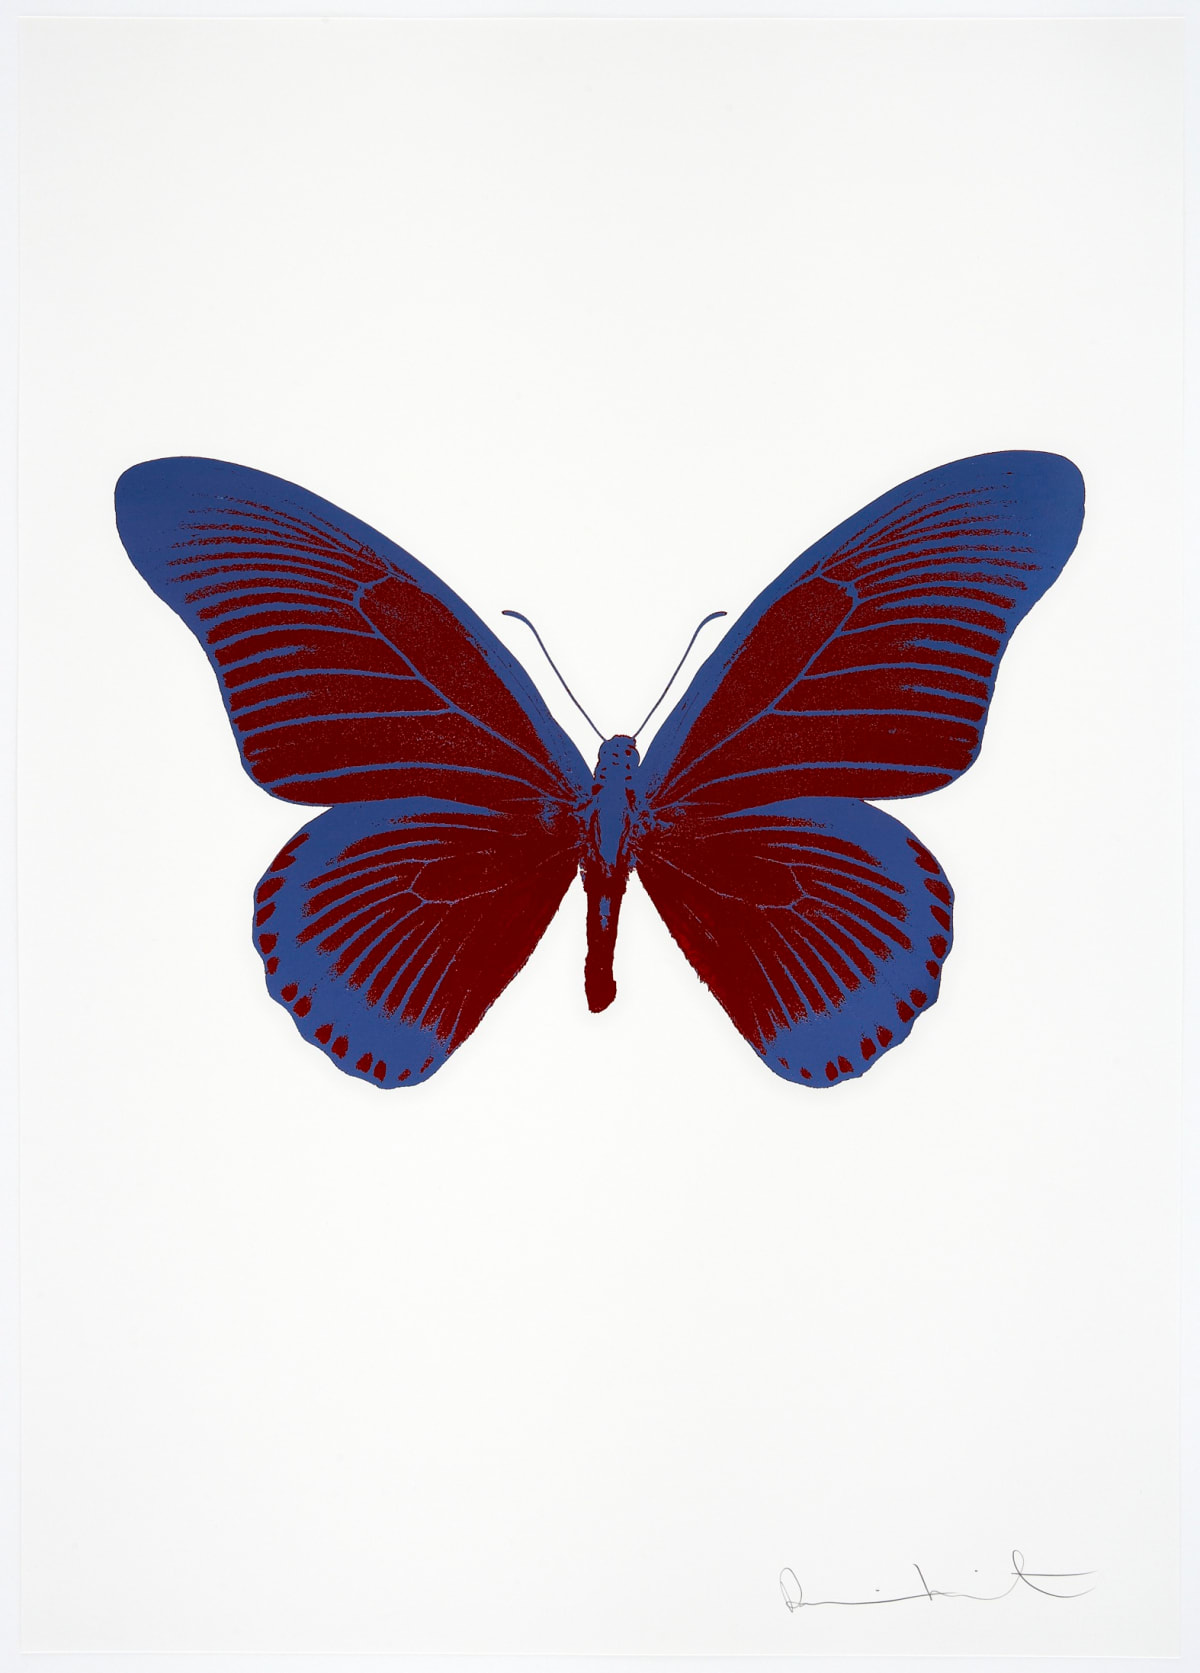 Damien Hirst The Souls IV - Chilli Red/Frost Blue, 2010 2 colour foil block on 300gsm Arches 88 archival paper. Signed and numbered. Published by Paul Stolper and Other Criteria 72 x 51cm OC8013 / 1418-36 Edition of 15